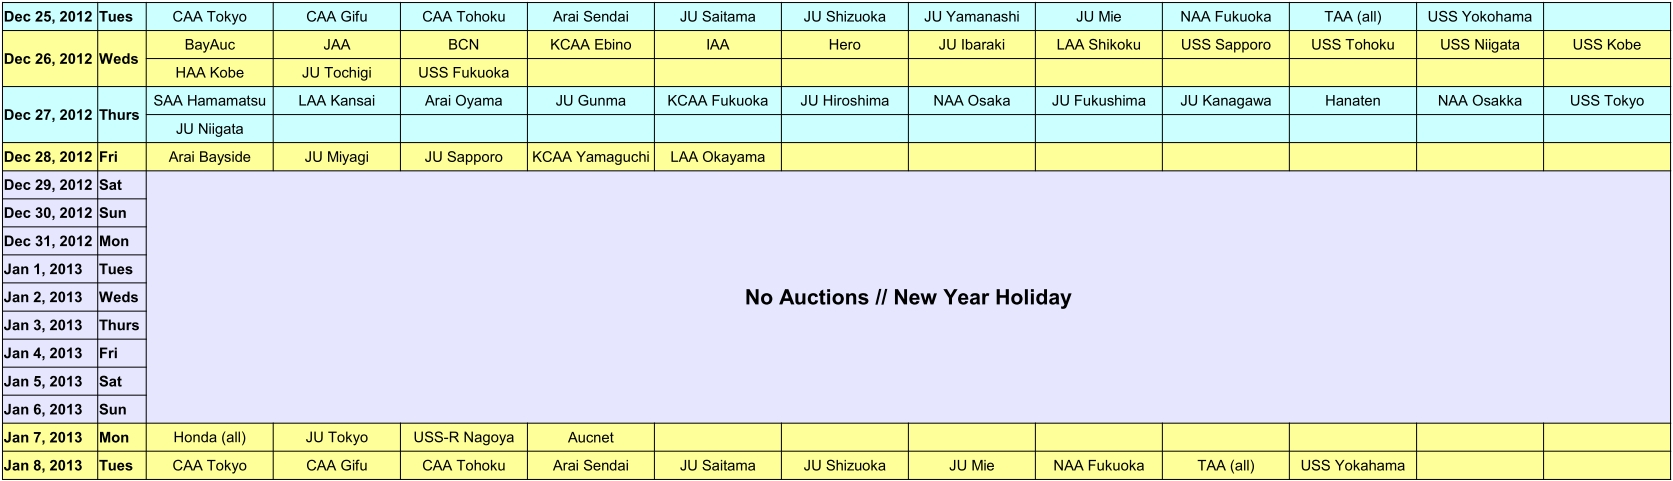 Japanese car auction schedule - end of 2012, start of 2013 (click to enlarge)